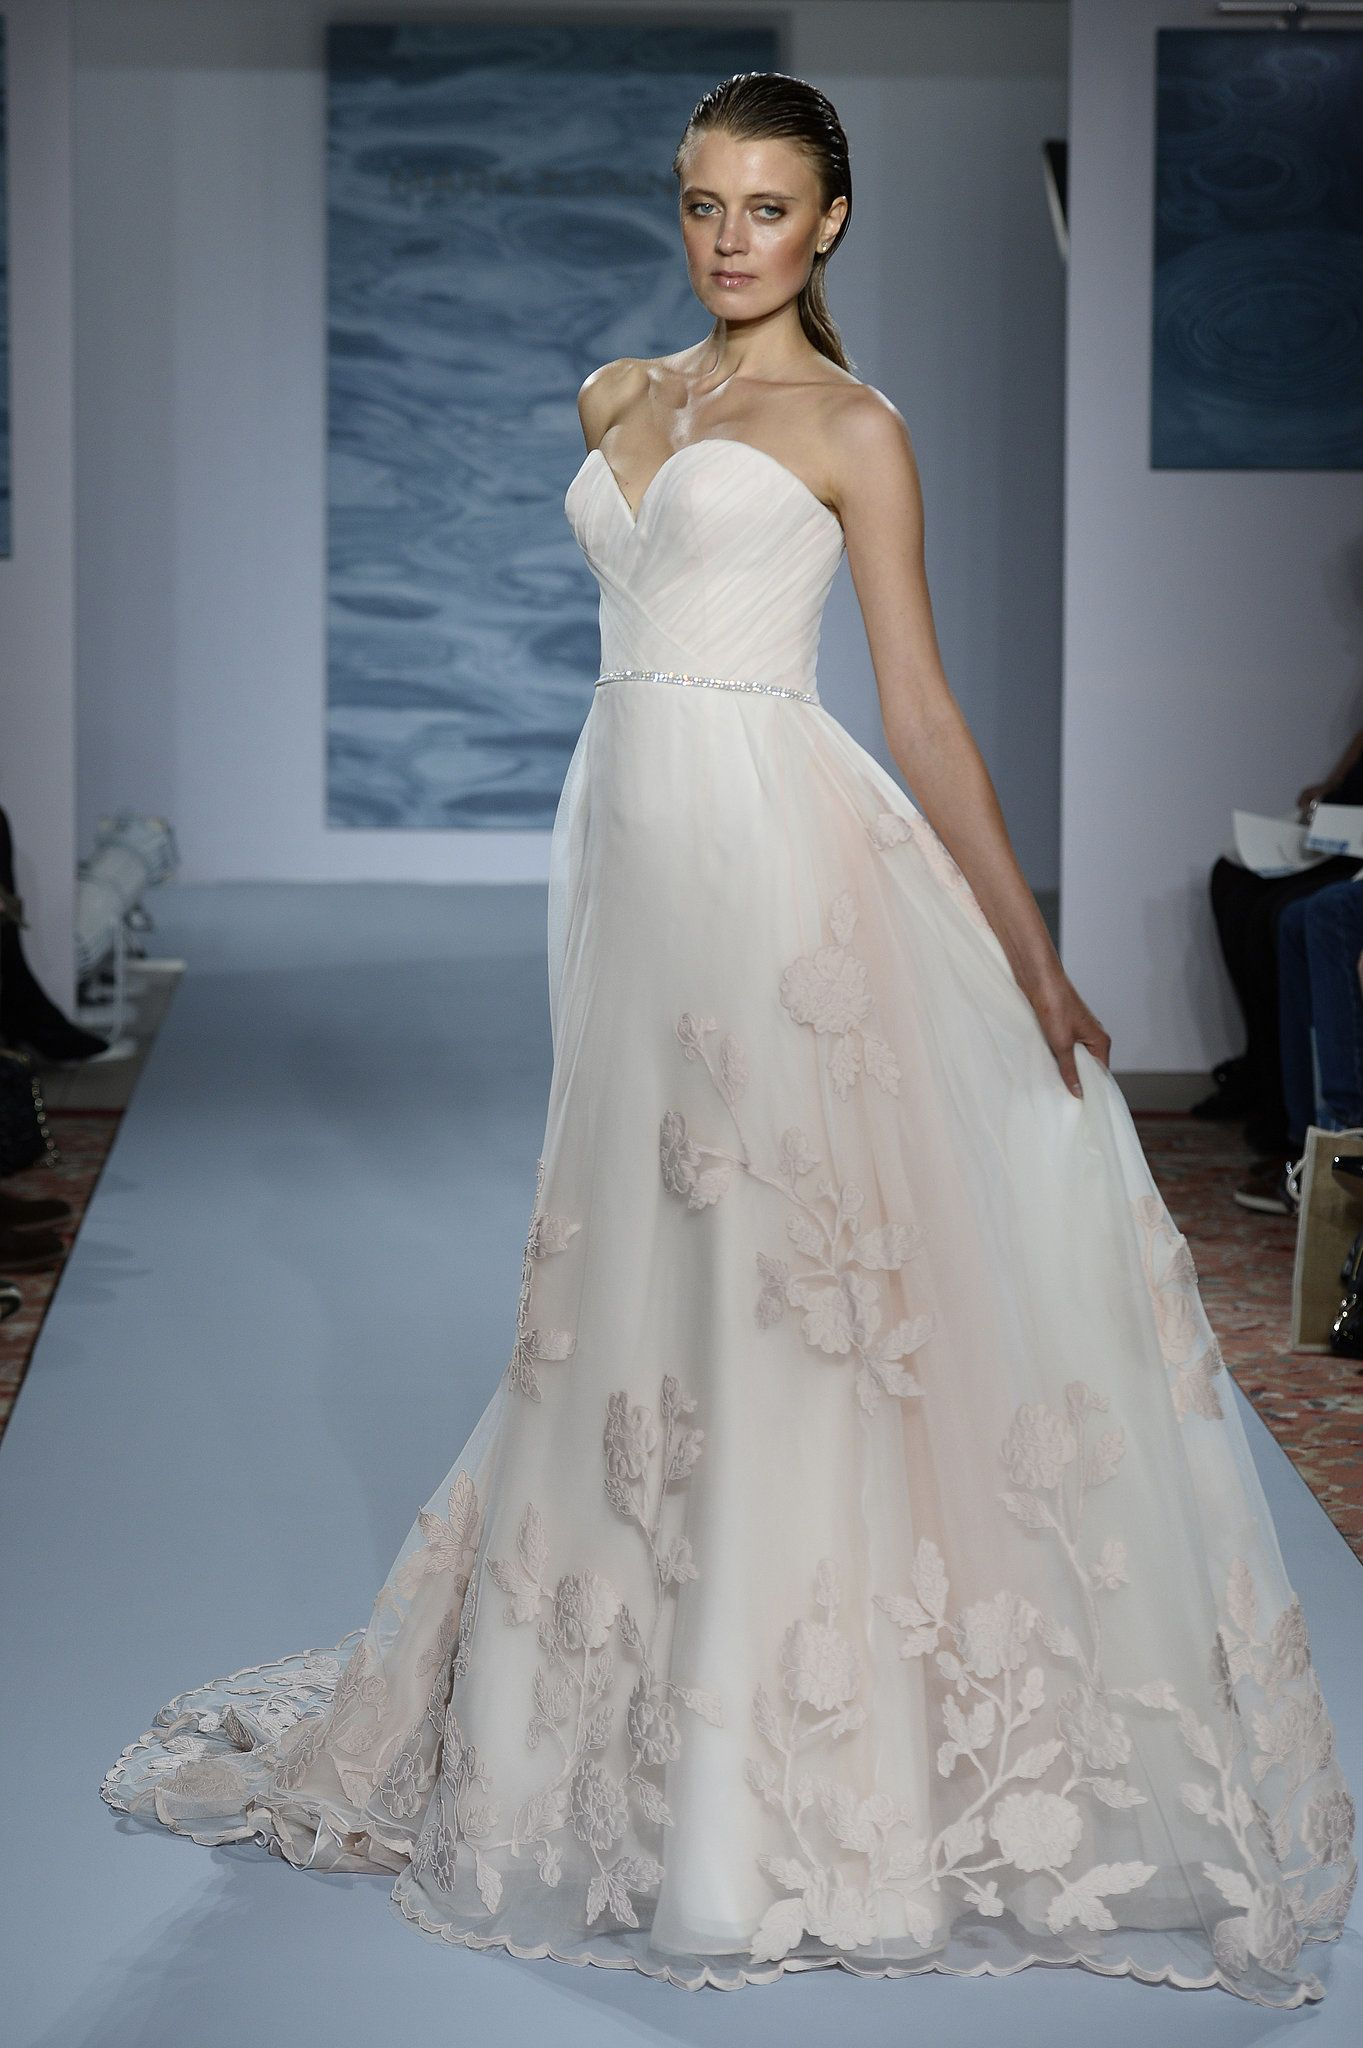 Blushing Brides  Bridal Inspiration  Pinterest  Mark zunino